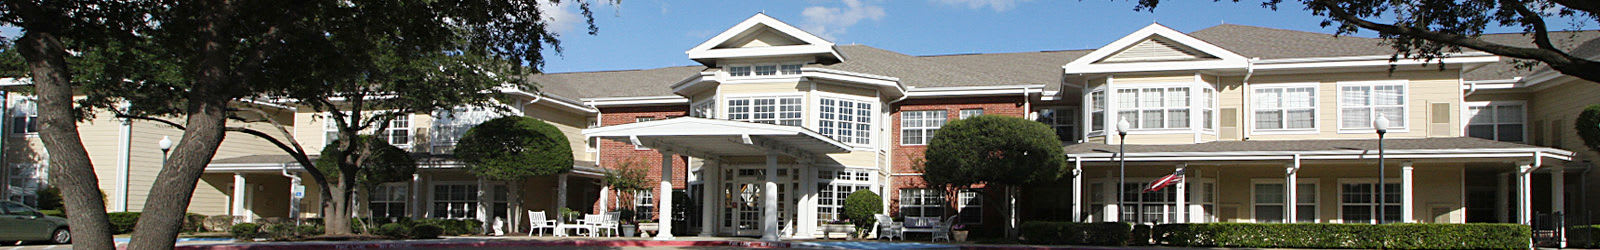 Pet policy at Wyndham Court of Plano in Plano, Texas